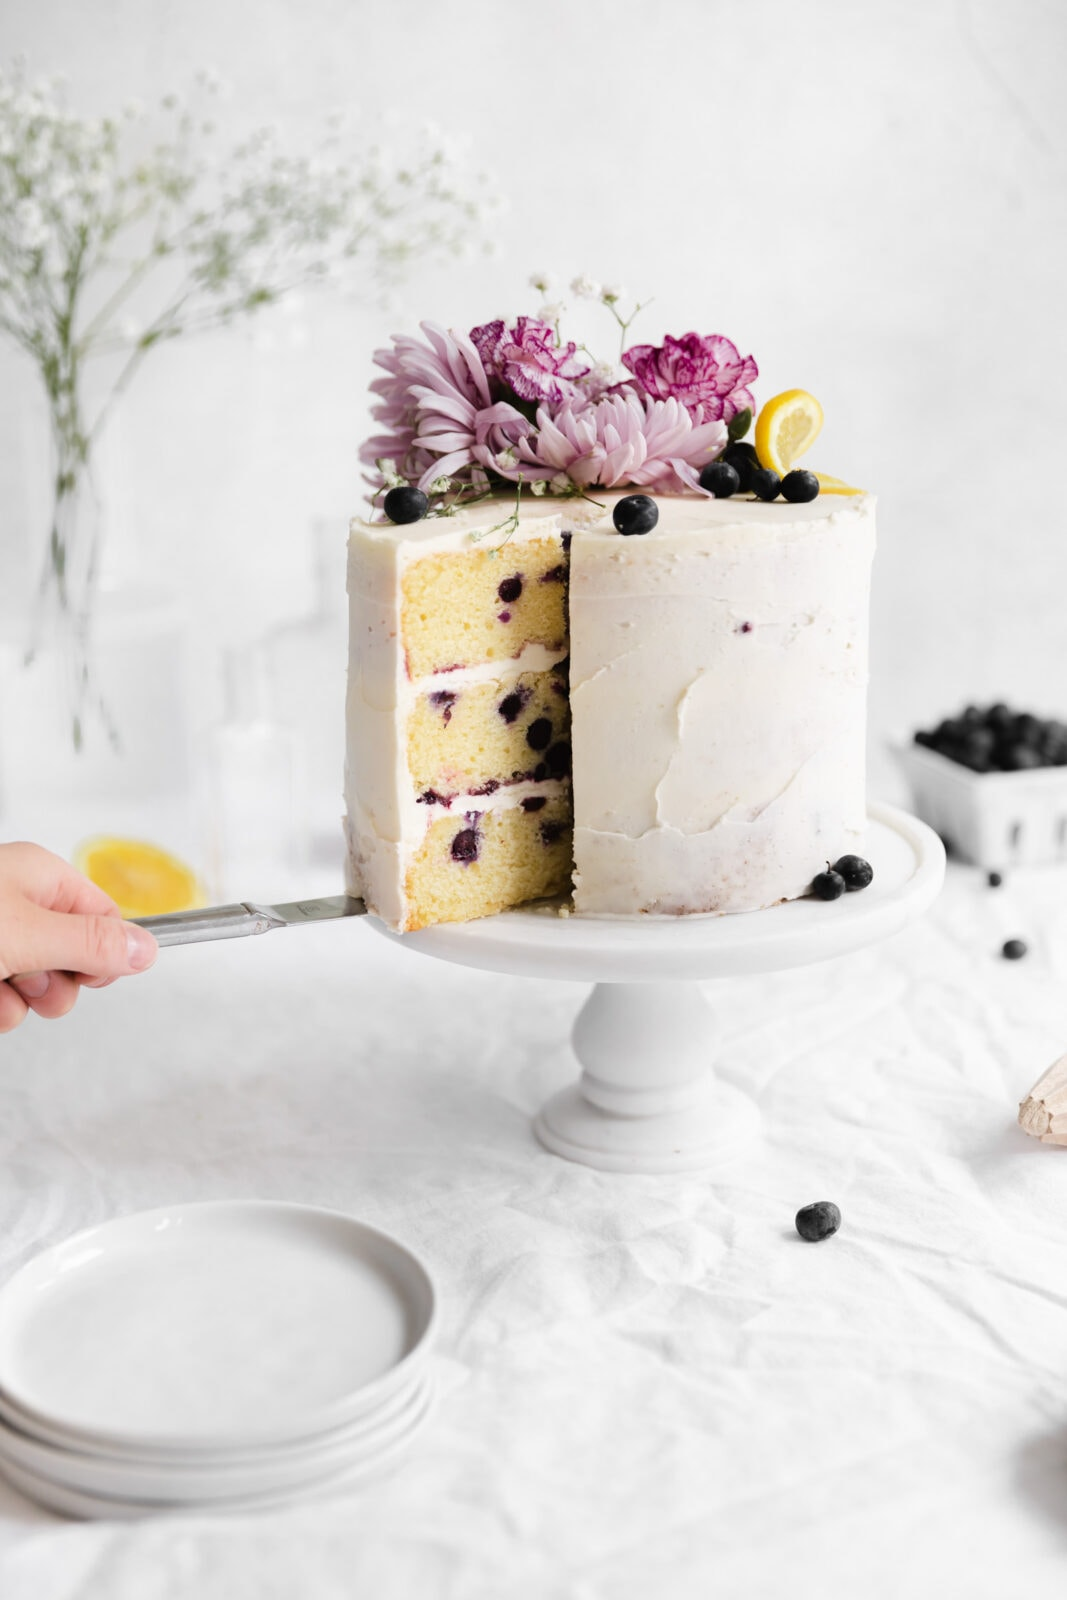 lemon blueberry layer cake with flowers